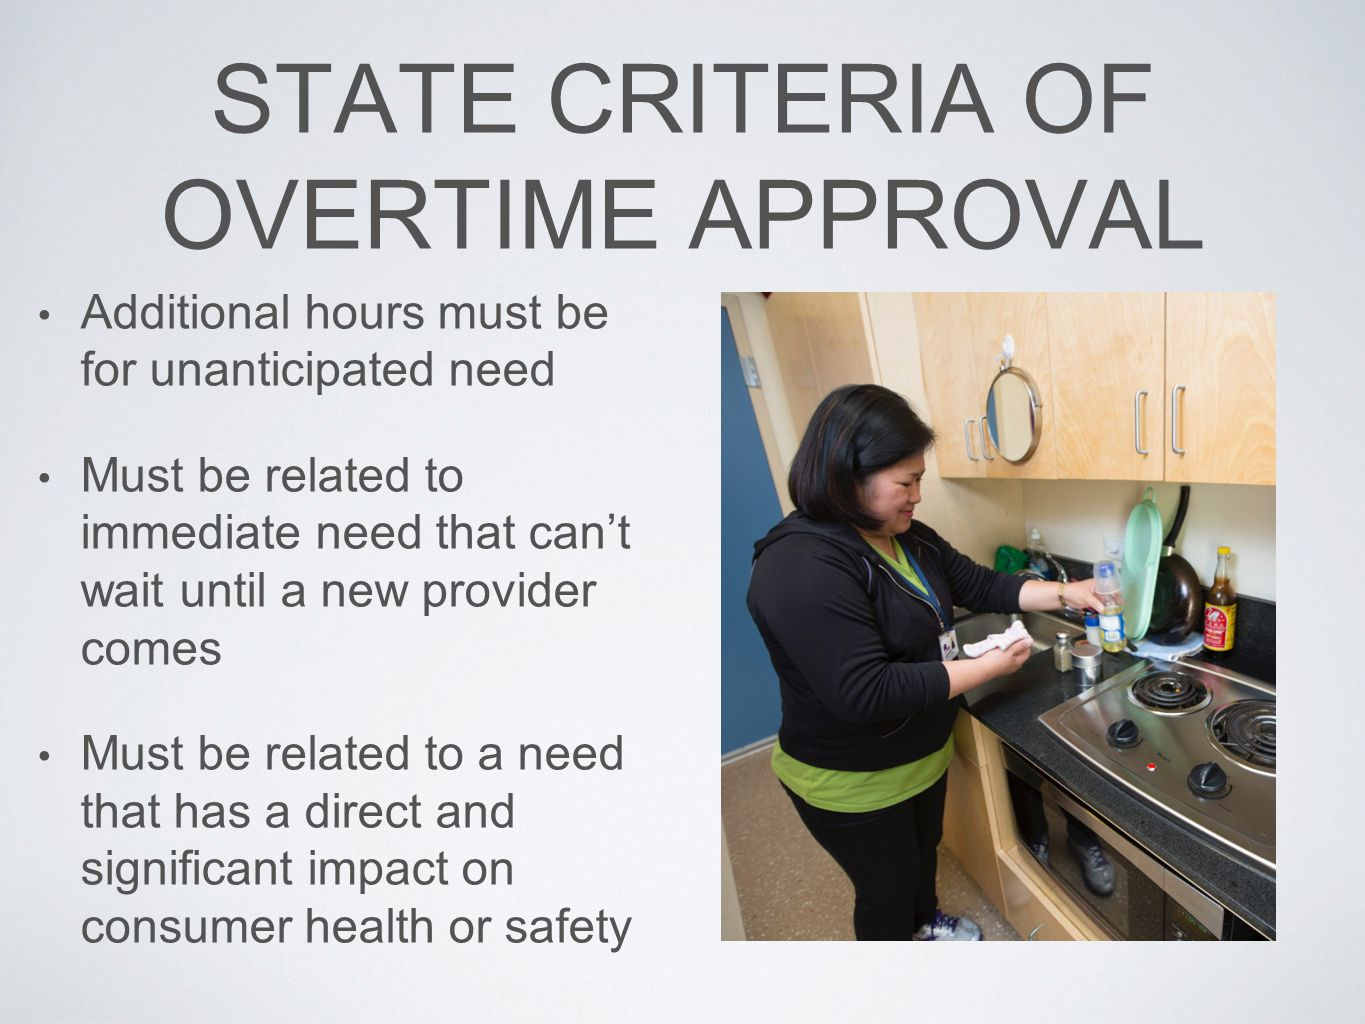 STATE CRITERIA OF OVERTIME APPROVAL